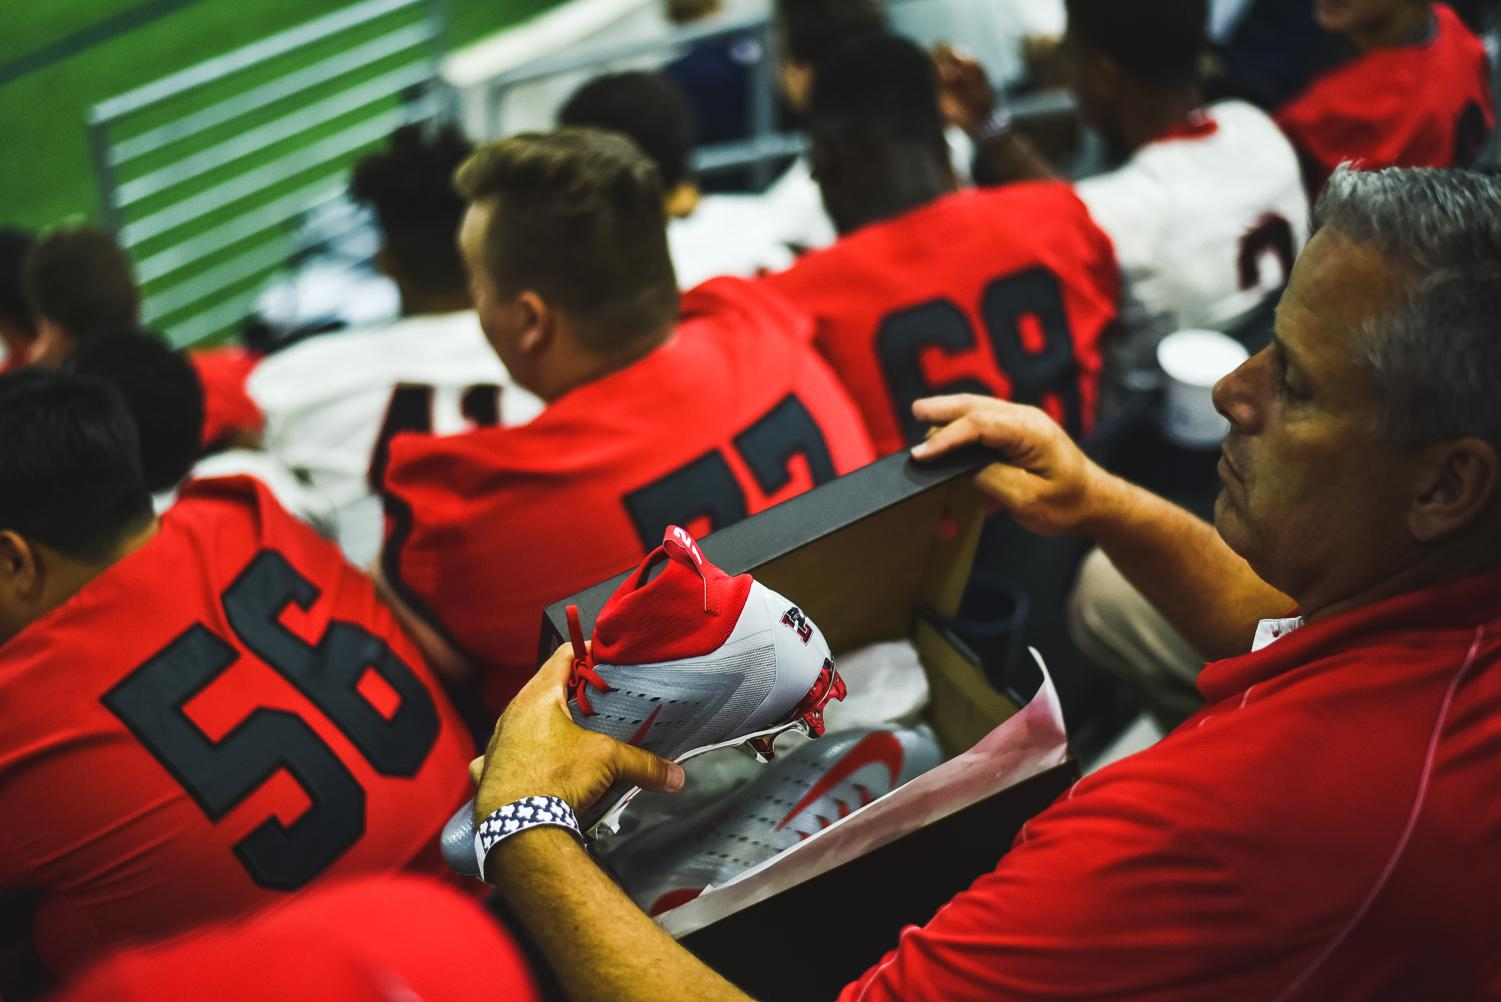 Head+football+coach+Chris+Burtch+sits+in+the+stands+at+the+Ford+Center+with+the+Liberty+Nike+custom+cleats+in+his+lap.+With+nearly+900+retweet%2C+the+Redhawks+were+at+the+Cowboys+practice+on+Tuesday%2C+August+21%2C+2018+where+they+presented+the+cleats+to+Cowboys+running+back+Ezekiel+Elliott.+